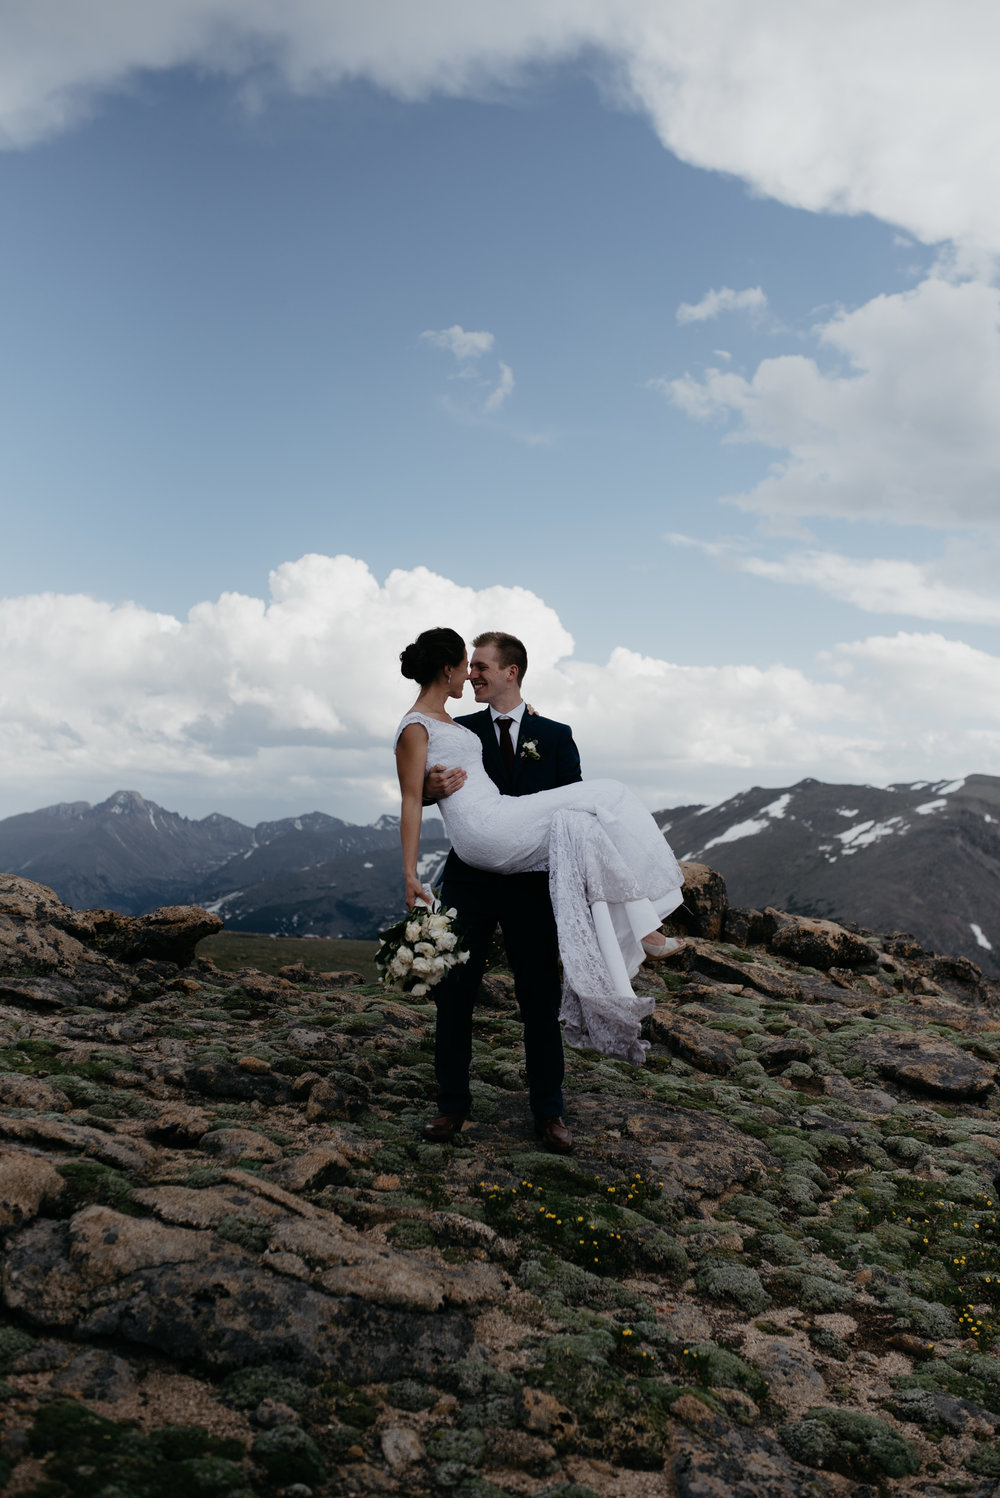 Colorado adventure elopement photographer. Trail Ridge Road elopement.